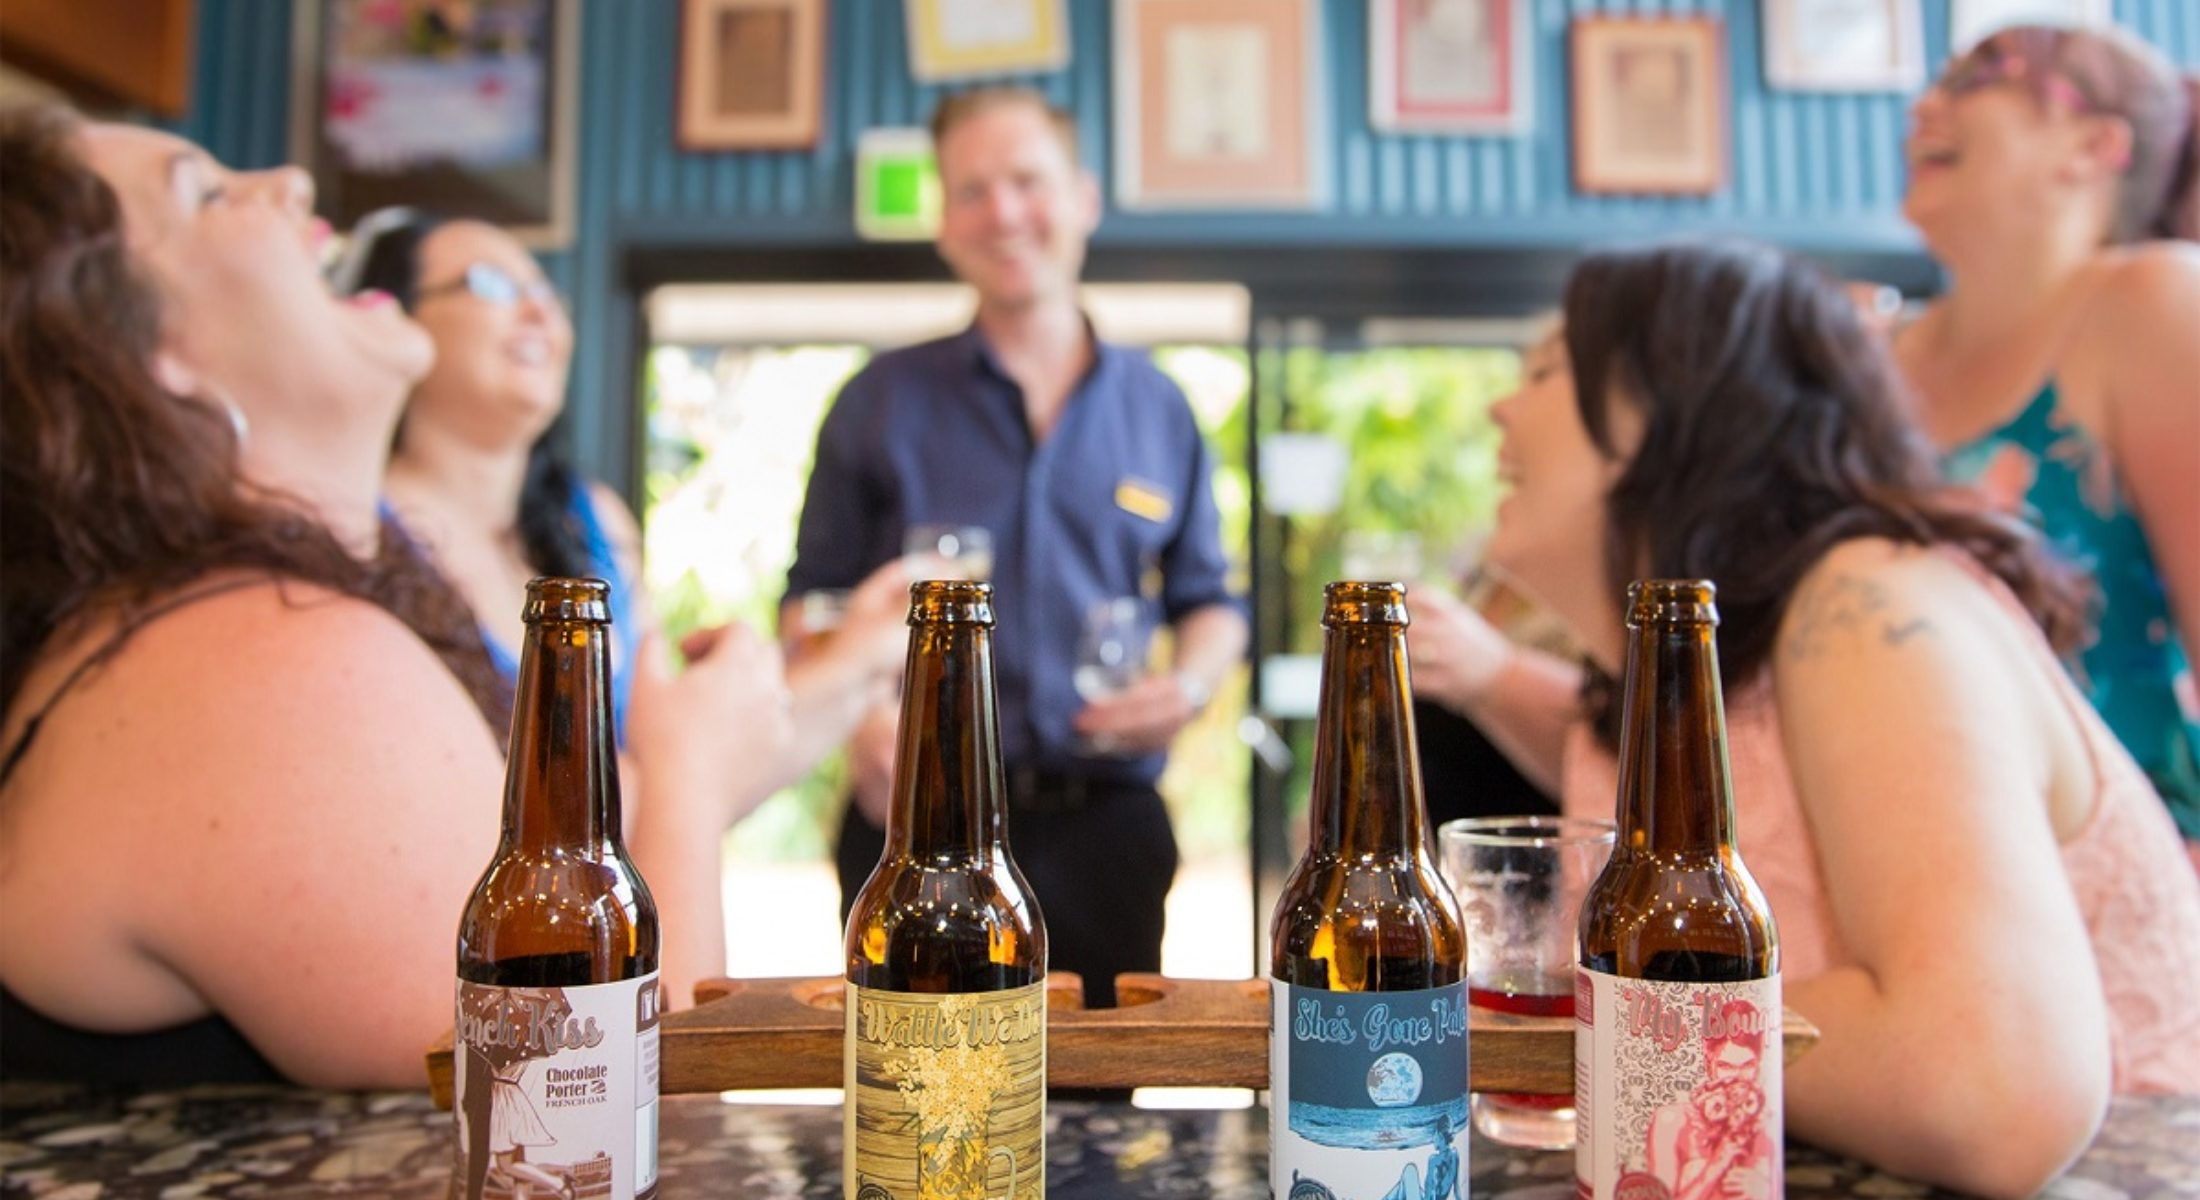 Mountain Wine Tours Visit Moreton Bay Region Beers Bridal Party